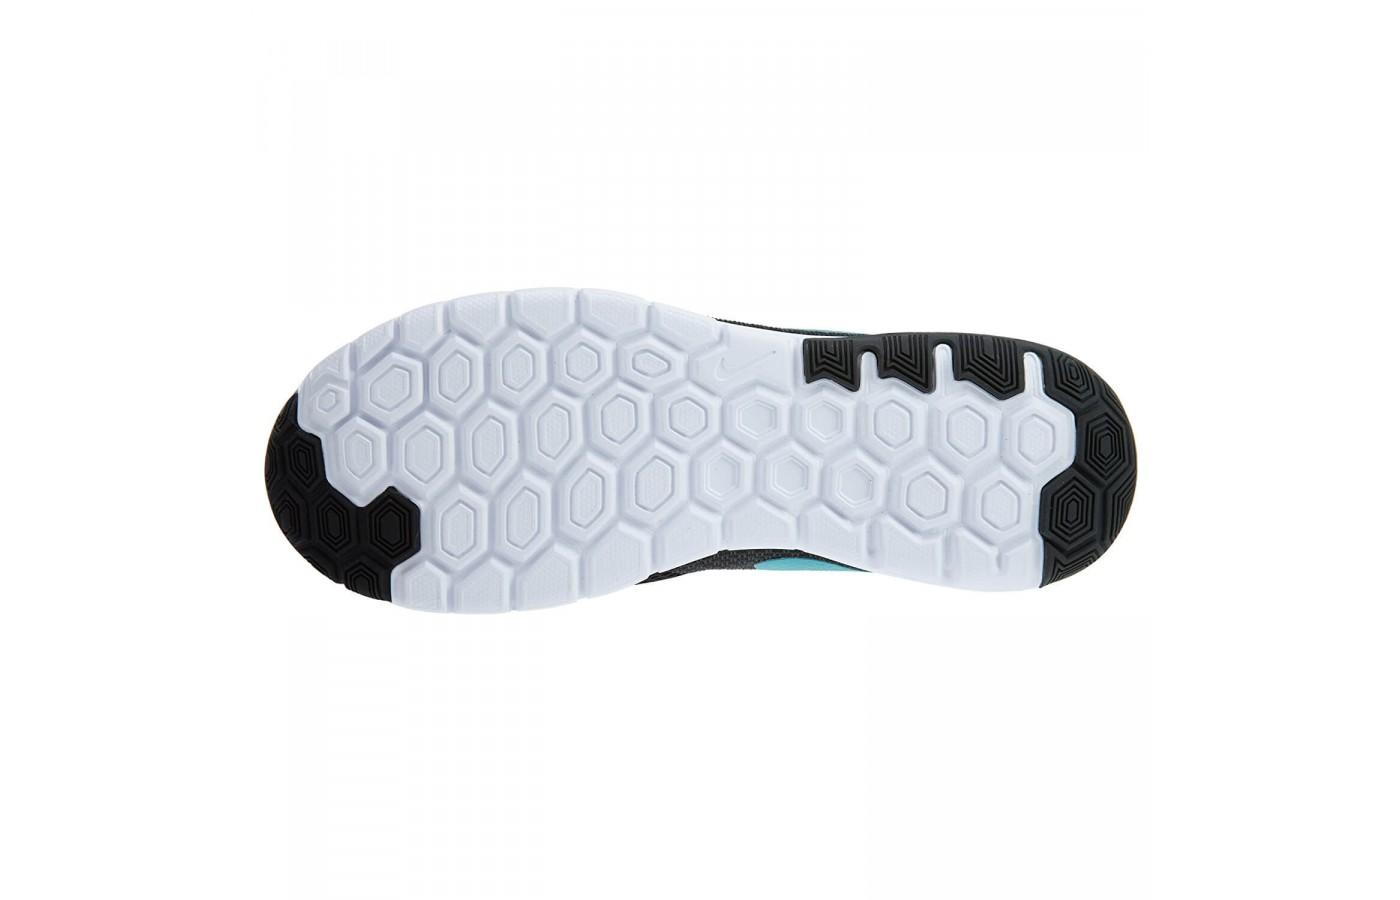 best sneakers 21e01 076e9 ... The outsole of the Nike Flex Experience RN 6 is durable and the  hexagonal lugs provide ...